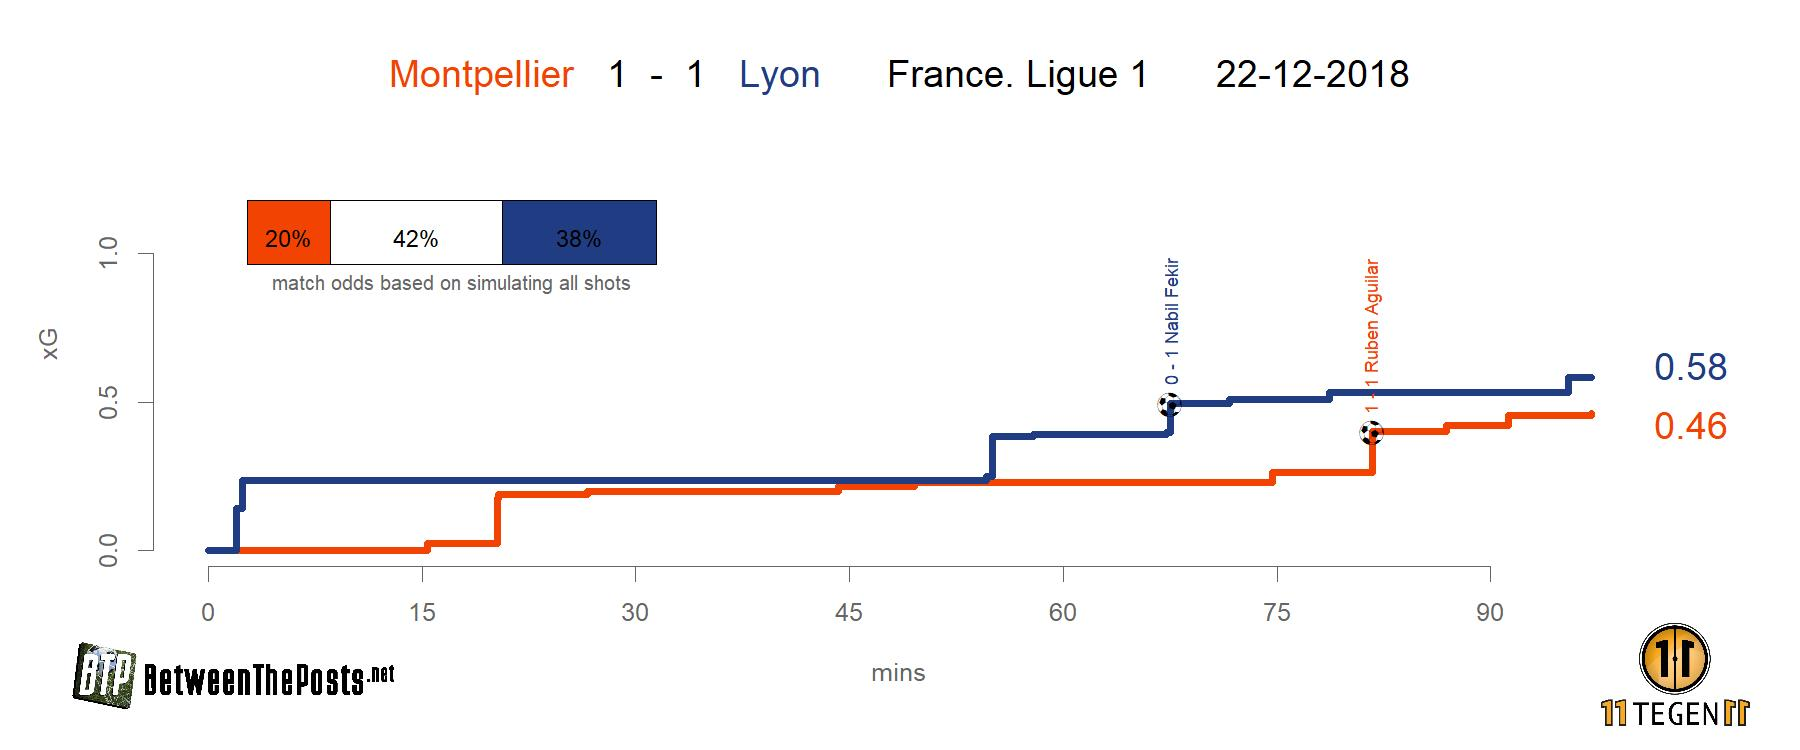 Expected goals plot Montpellier - Lyon 1-1 Ligue 1